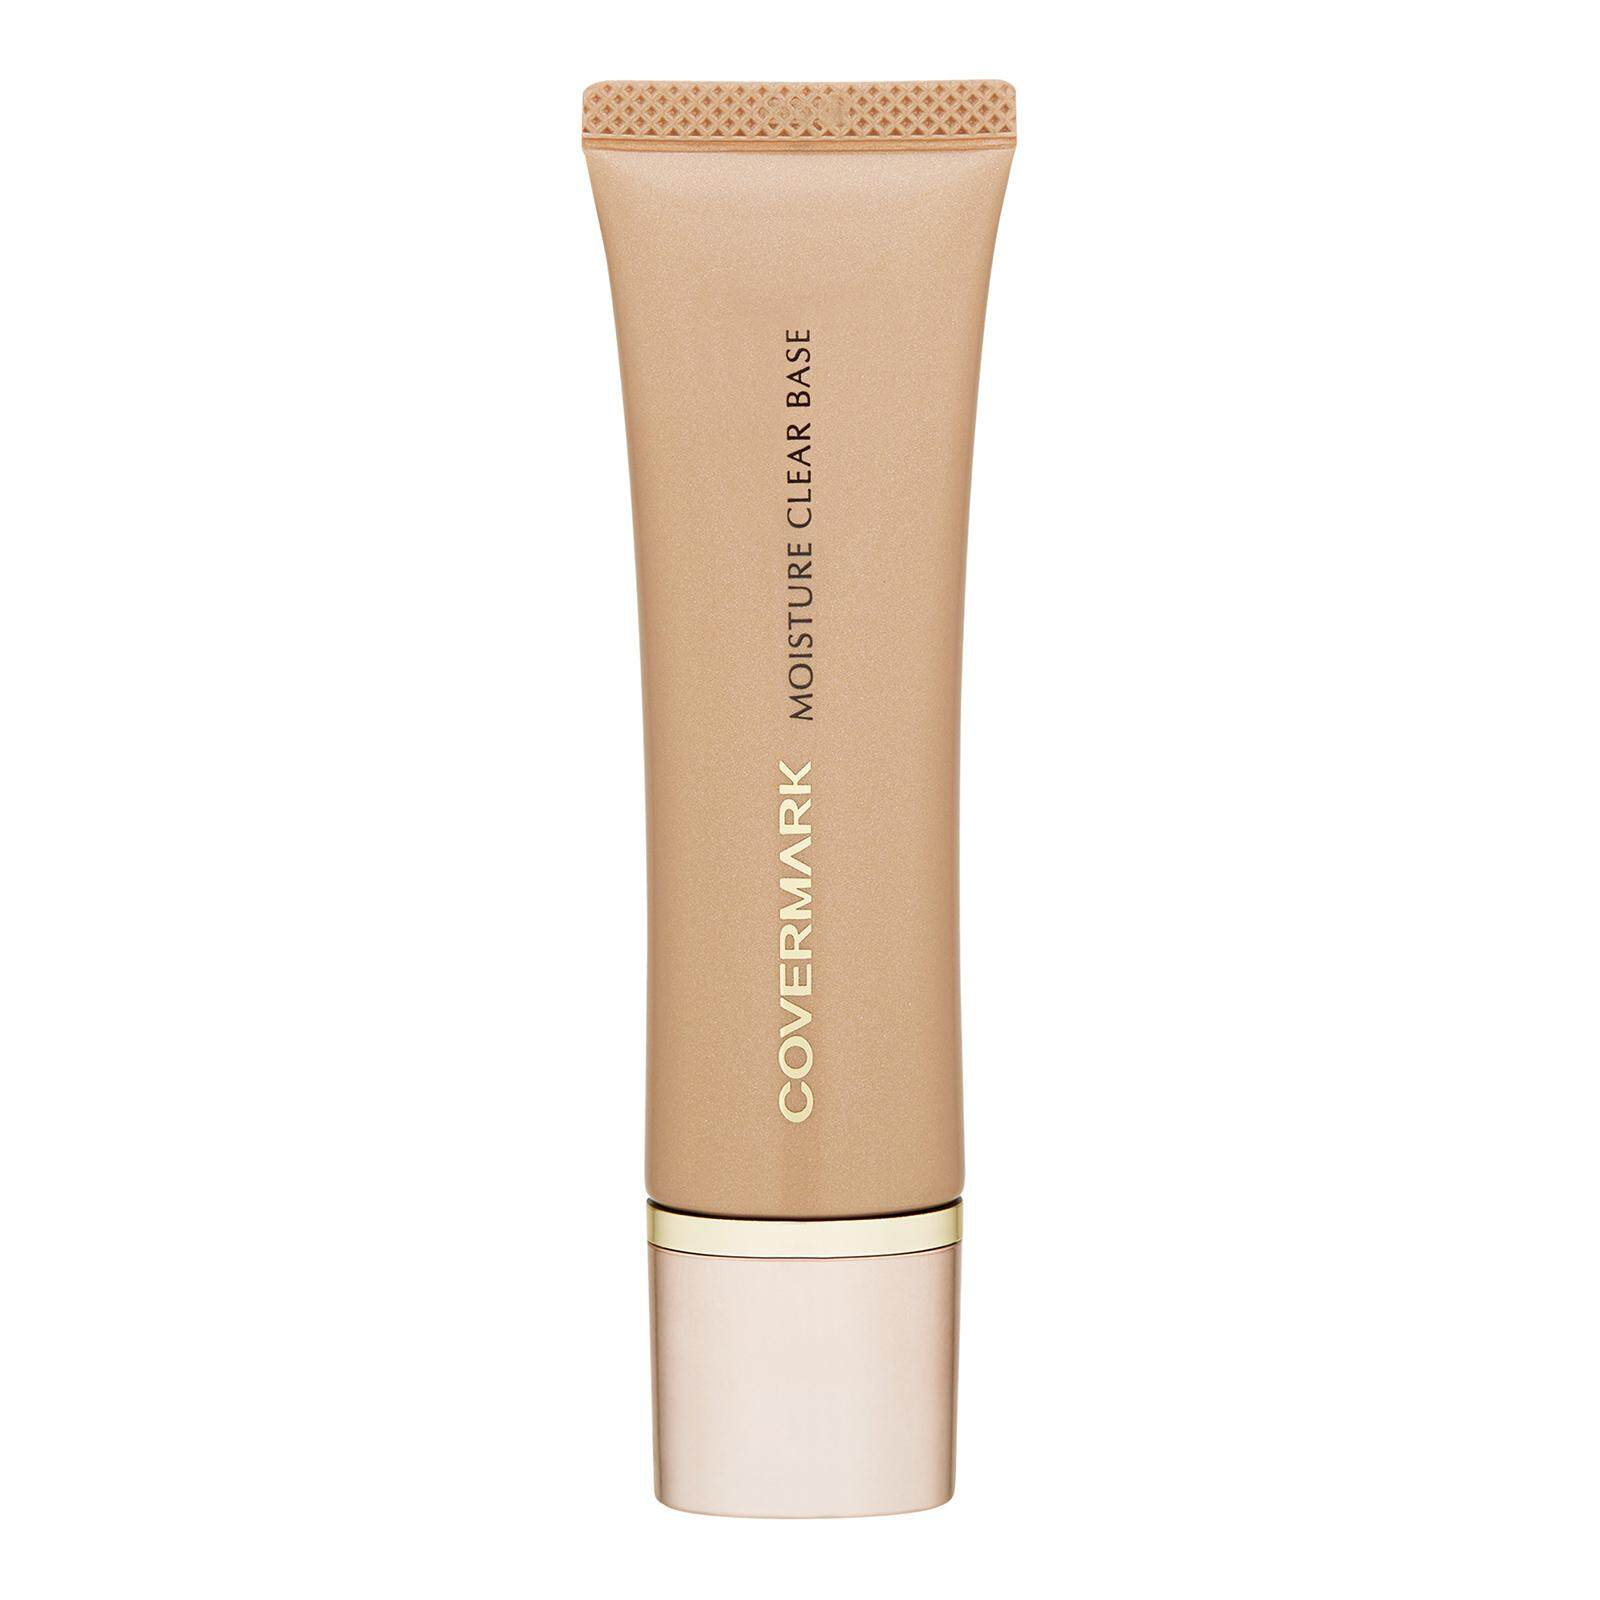 Covermark Moisture Clear Base SPF35 / PA++ 25g, - intl Philippines